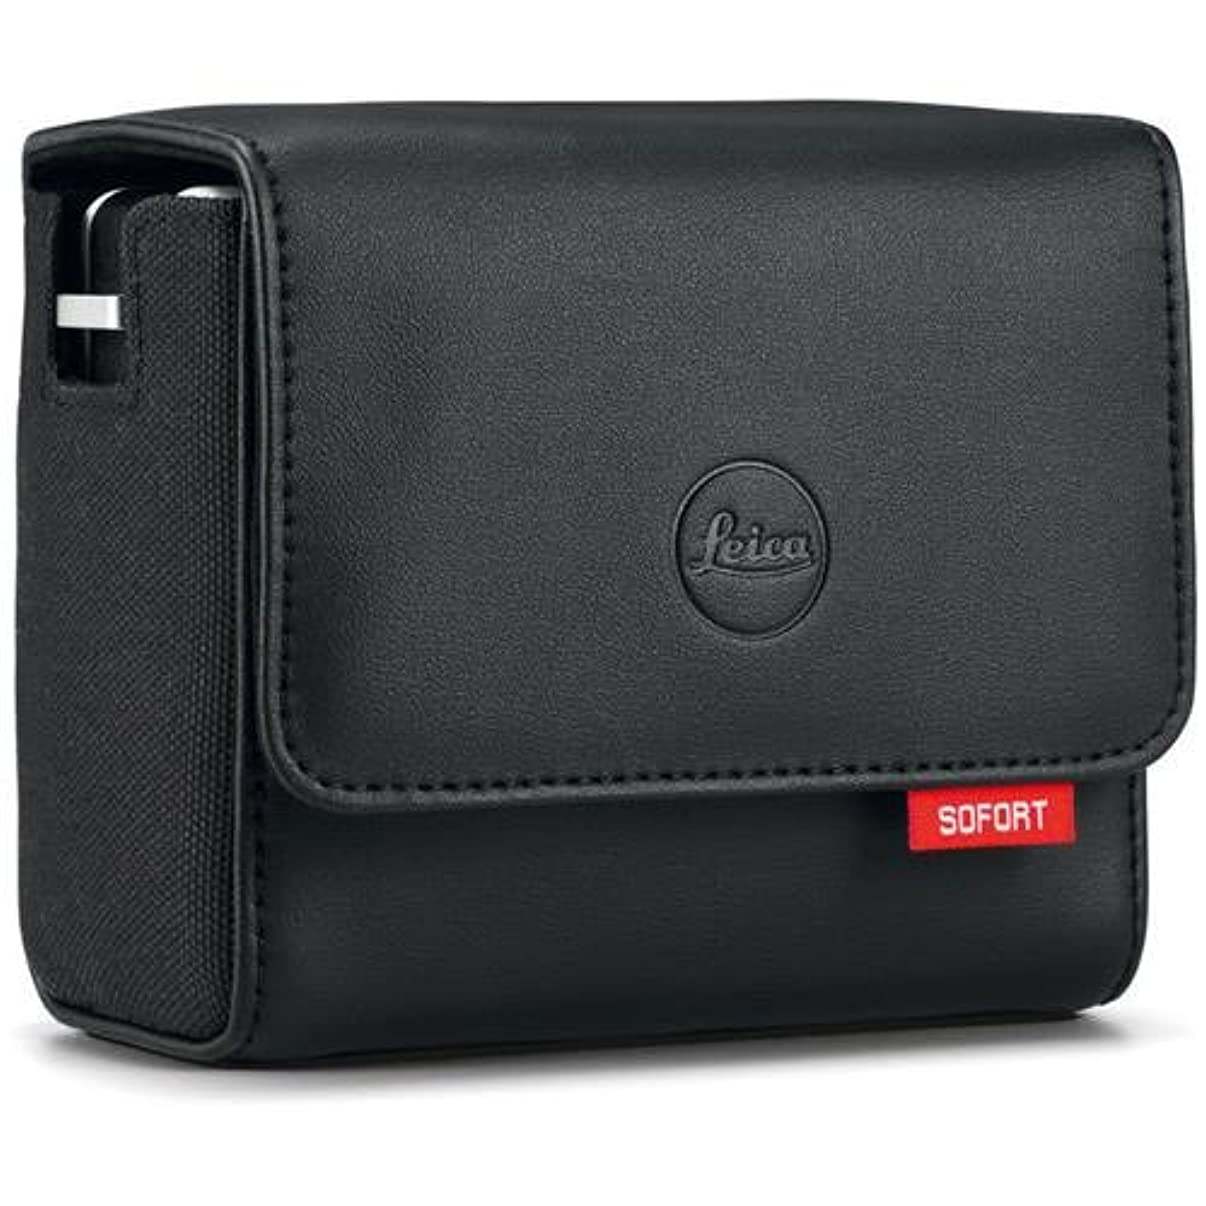 Leica Case for SOFORT Instant Camera, Black